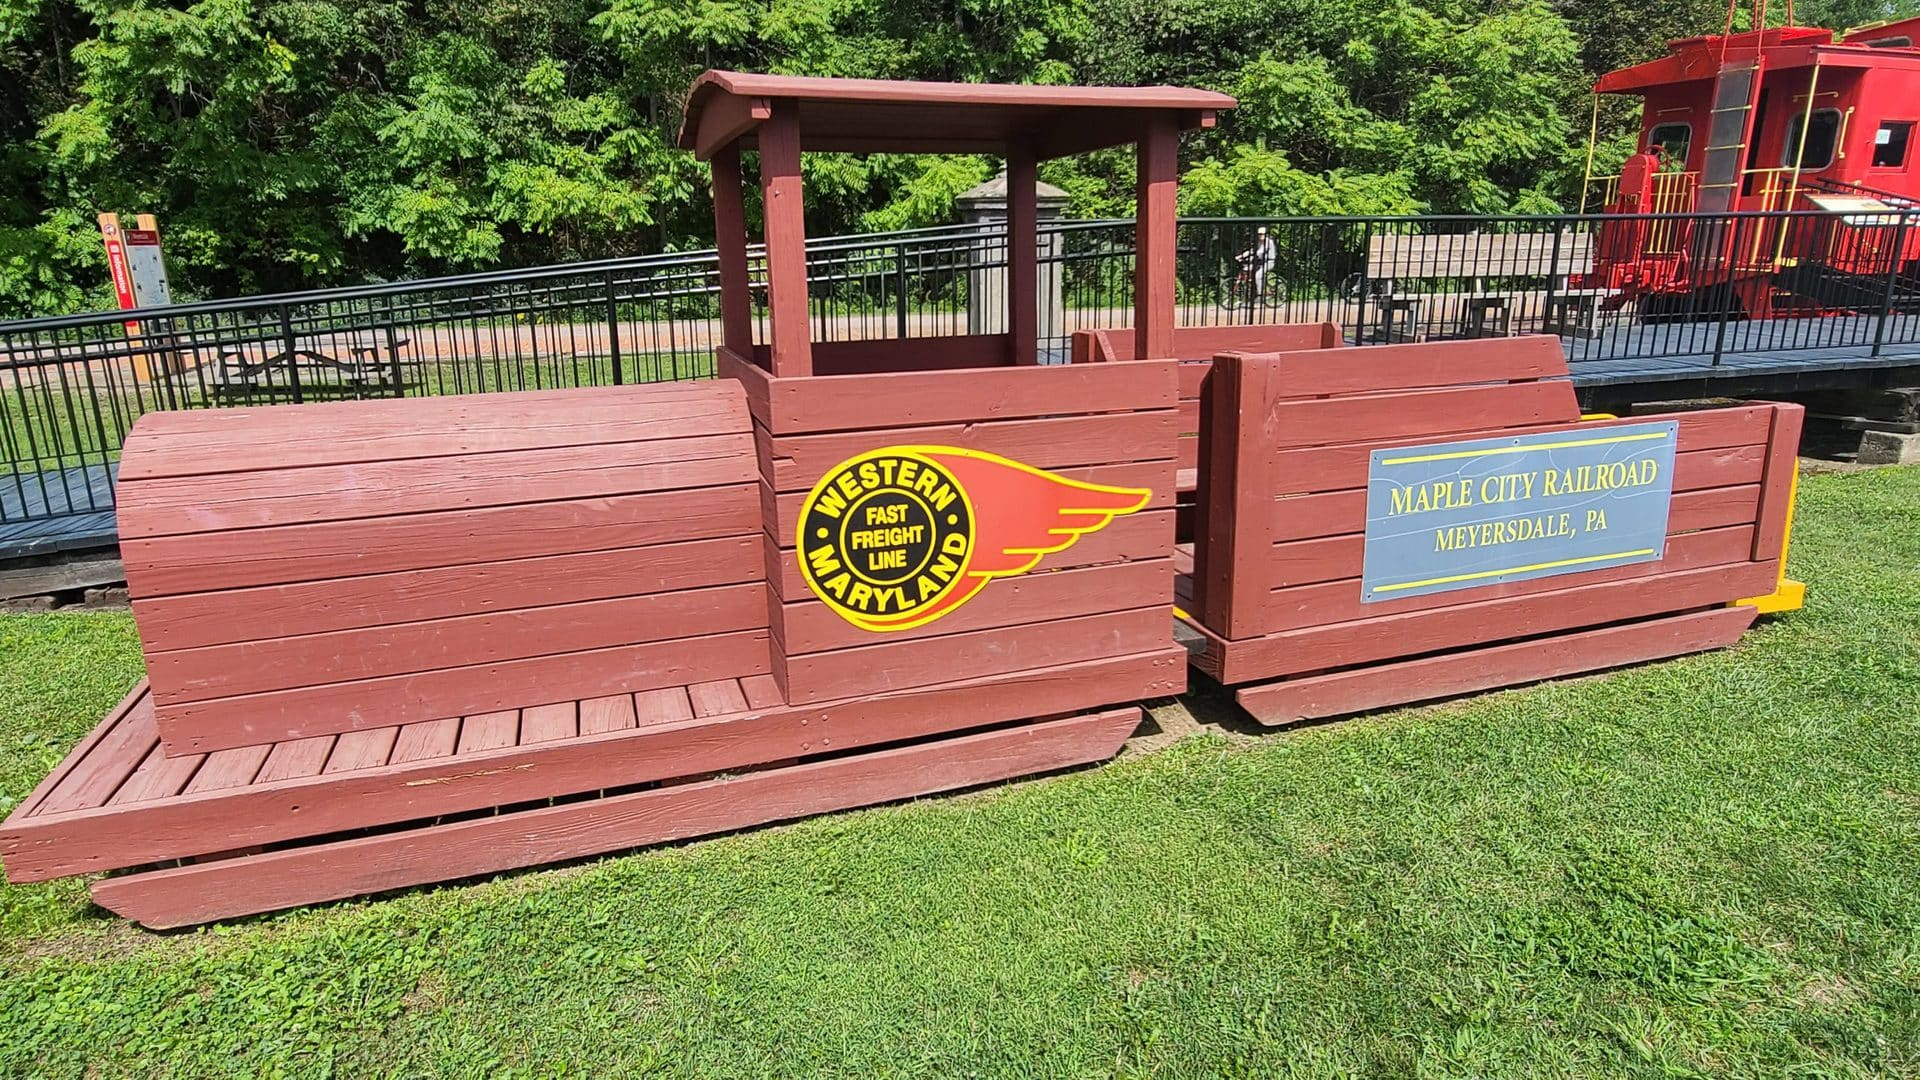 A wooden locomotive and coal car sits in a grassy playground. The locomotive is adorned with the logos of the Western Maryland railroad and Maple City Railroad.